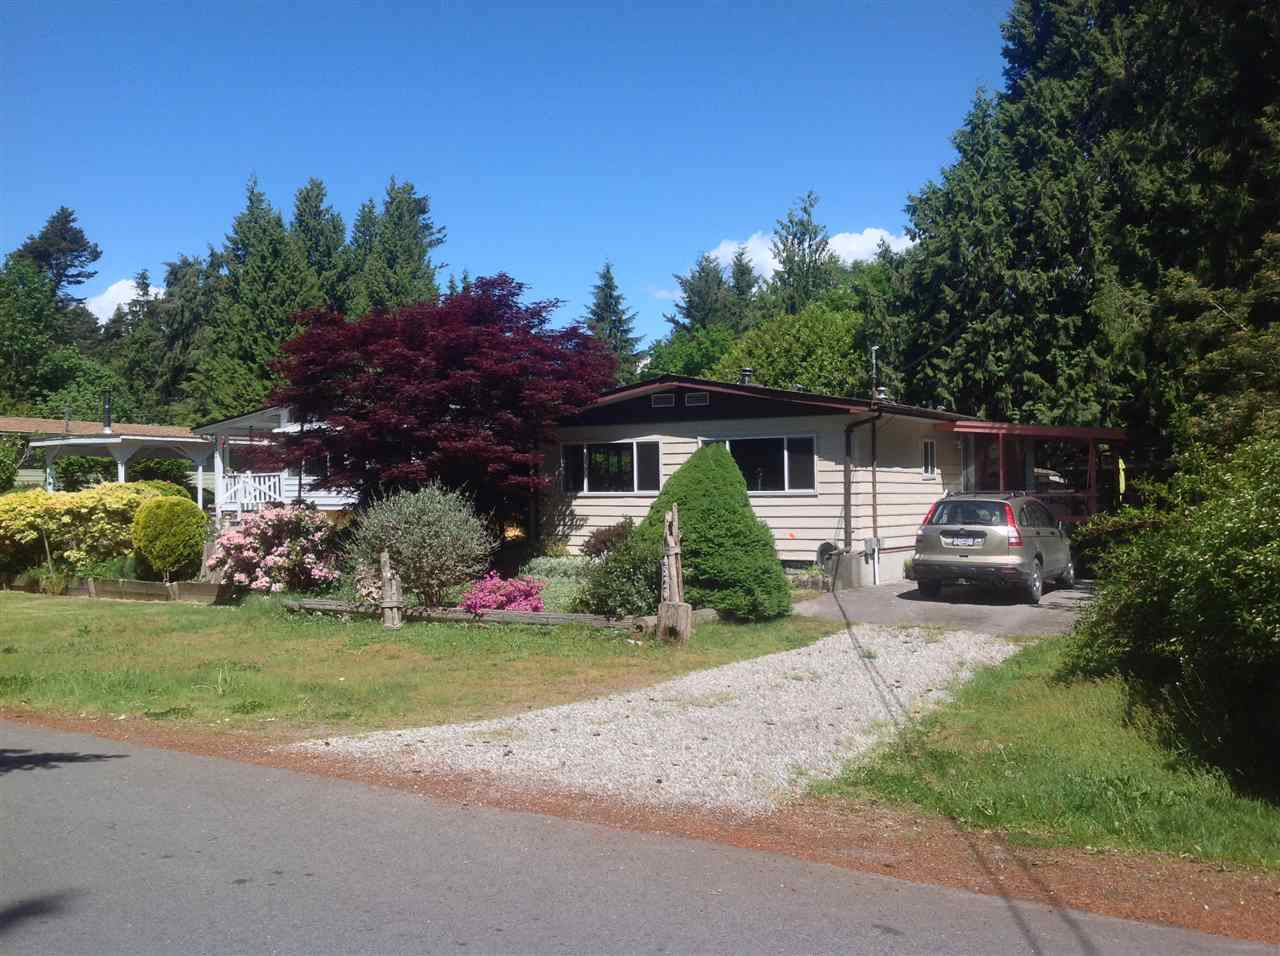 Main Photo: 4526 STALASHEN Drive in Sechelt: Sechelt District Manufactured Home for sale (Sunshine Coast)  : MLS®# R2262649